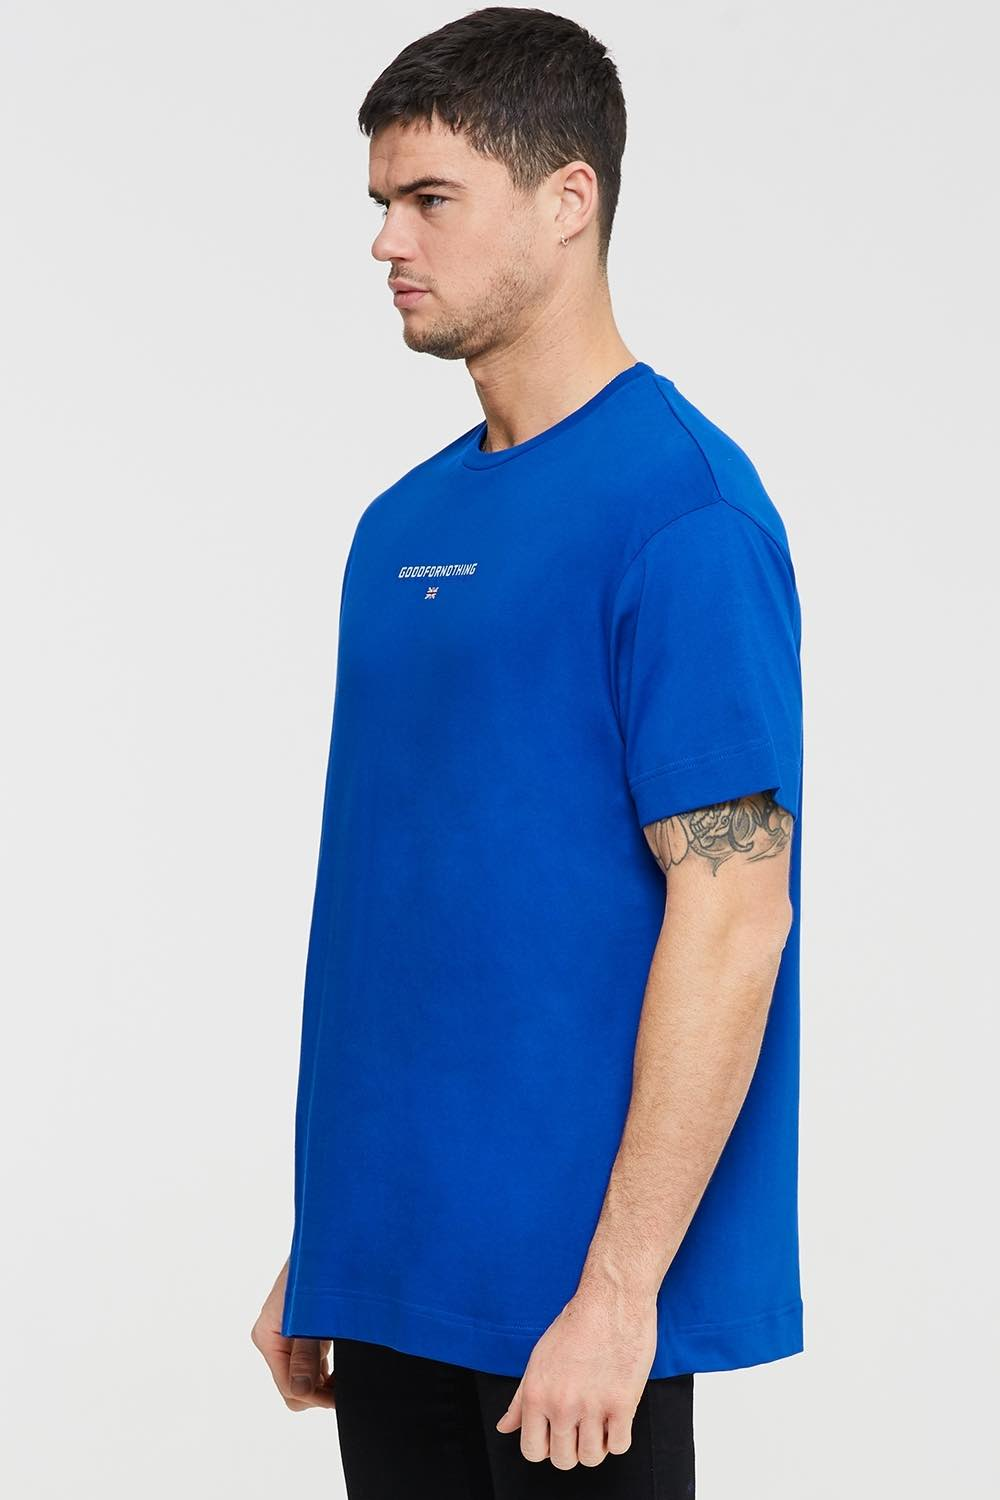 Good For Nothing Tech Oversized T-shirt - Blue - 2